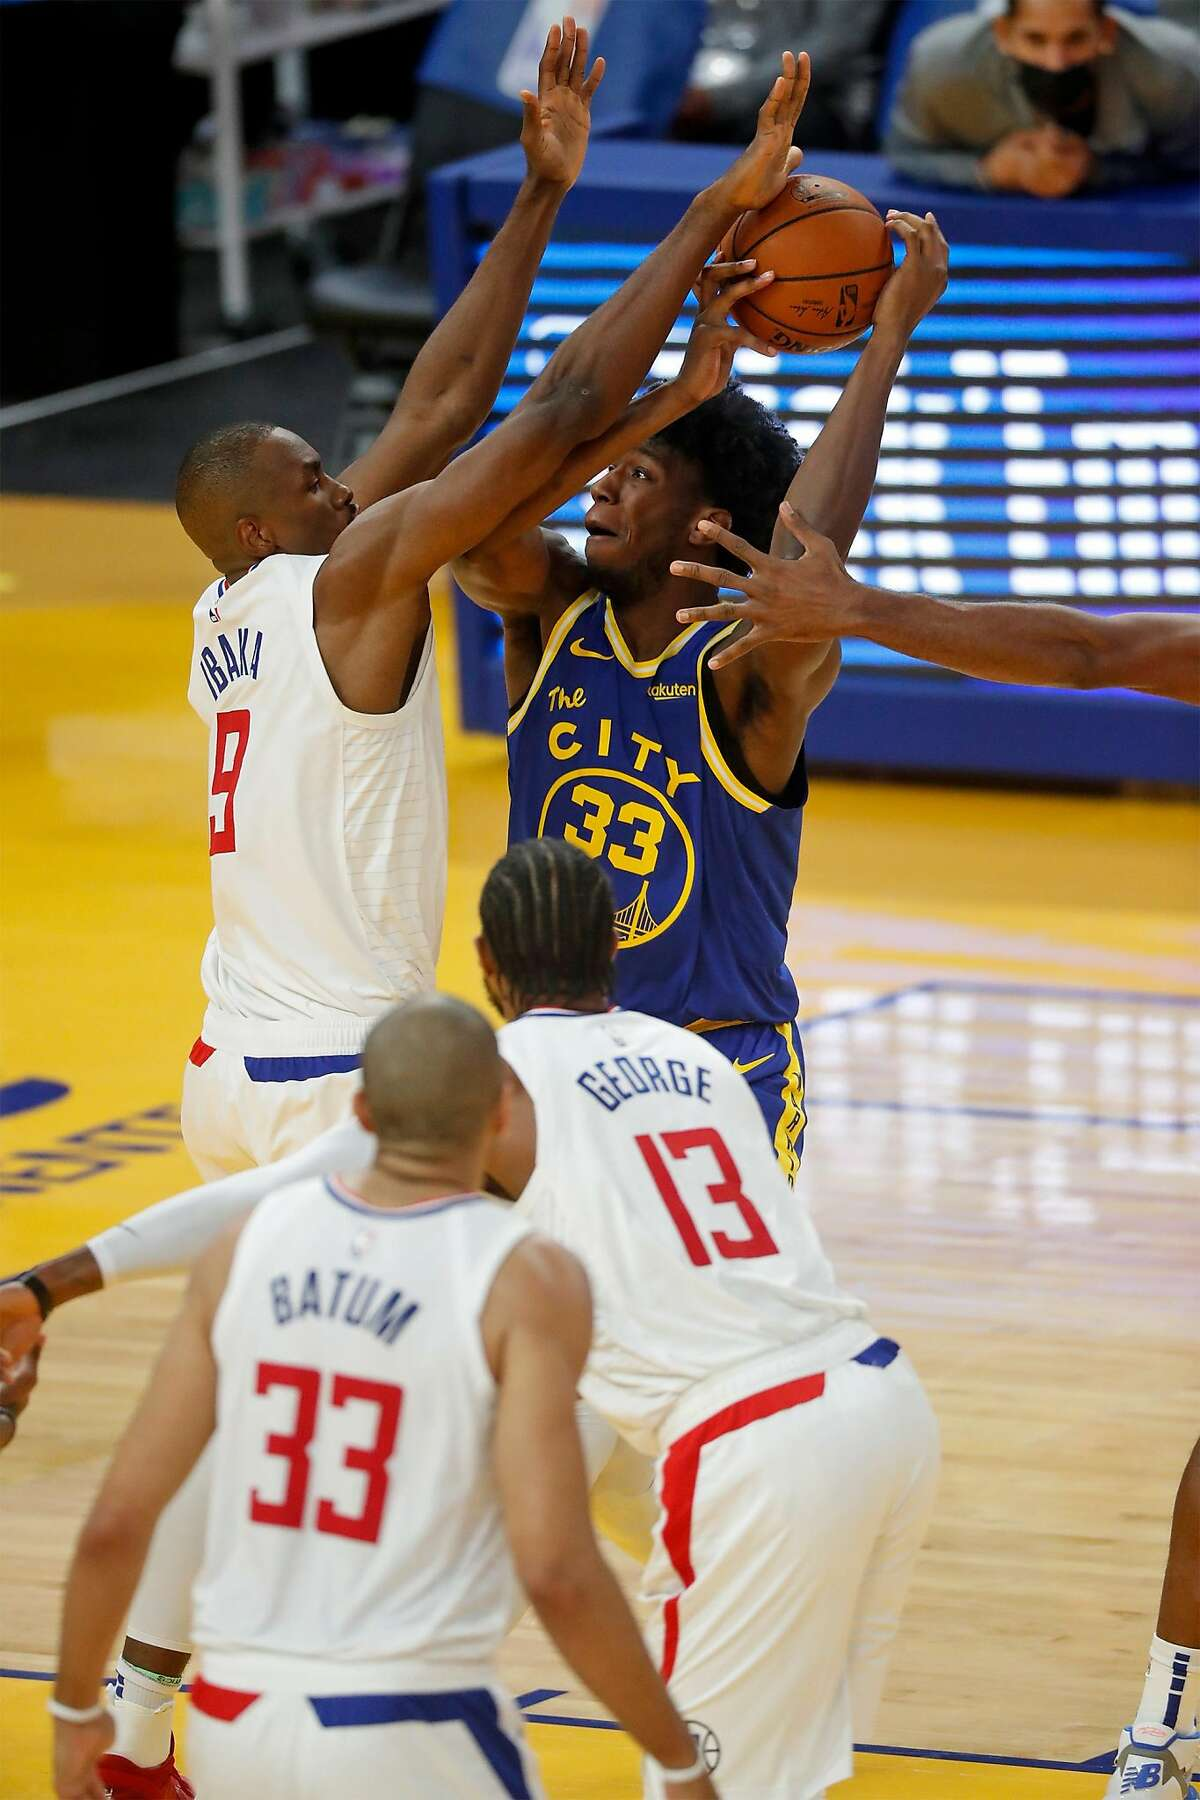 Golden State Warriors' James Wisemna is guarded by Los Angeles Clippers' Serge Ibaka in 2nd quarter during NBA game at Chase Center in San Francisco, Calif., on Wednesday, January 6, 2021.